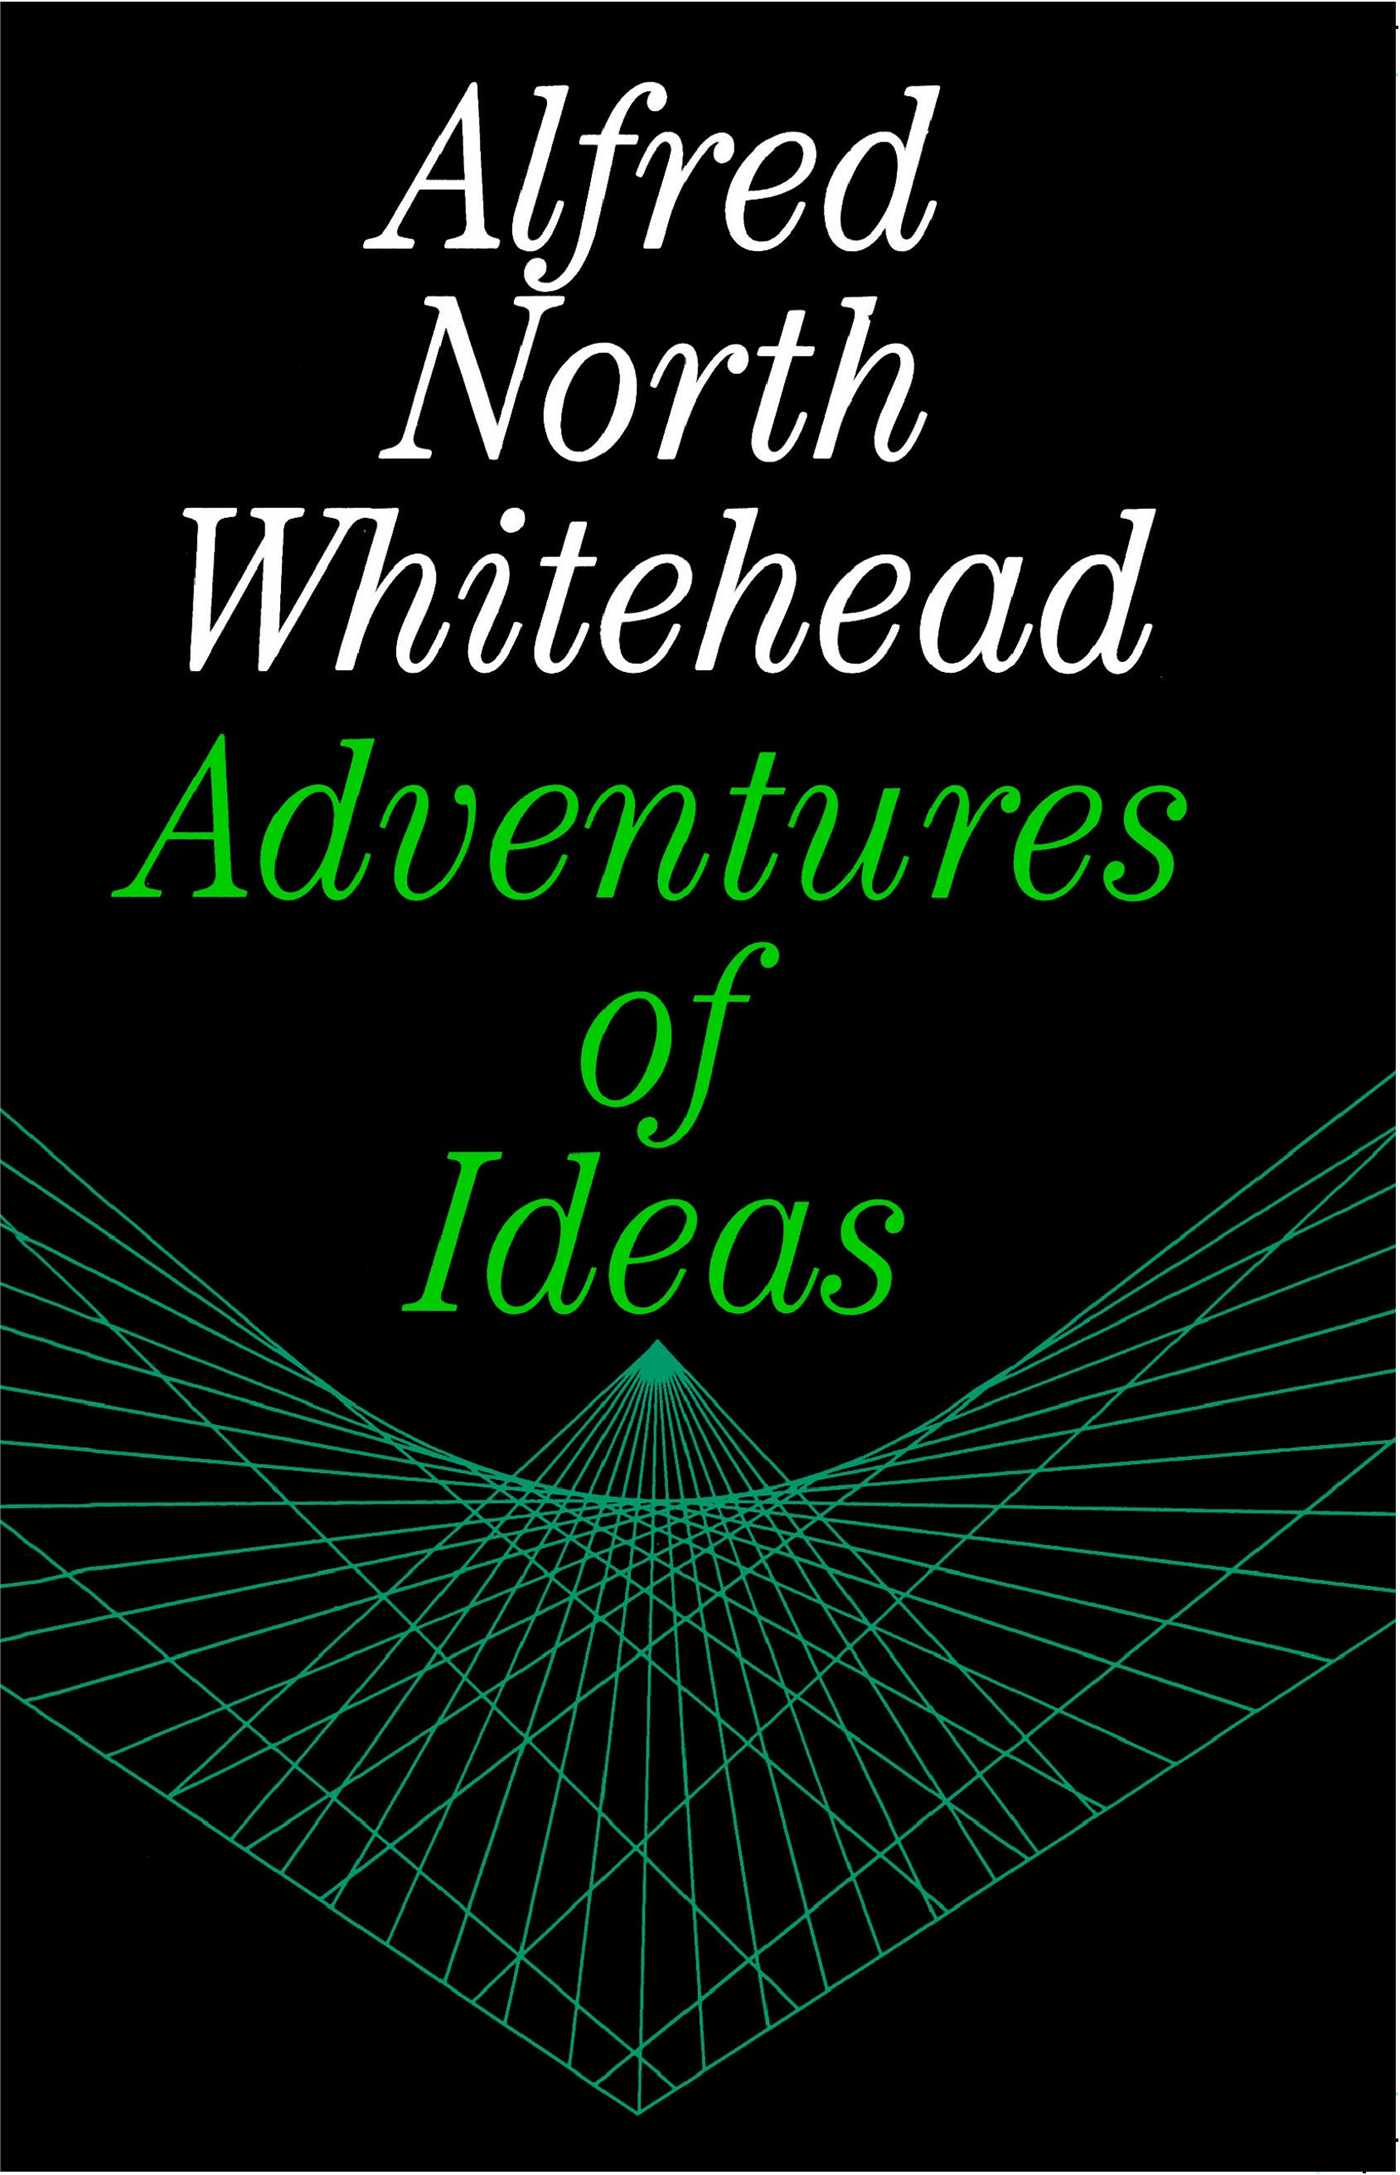 Adventures of ideas 9780029351703 hr